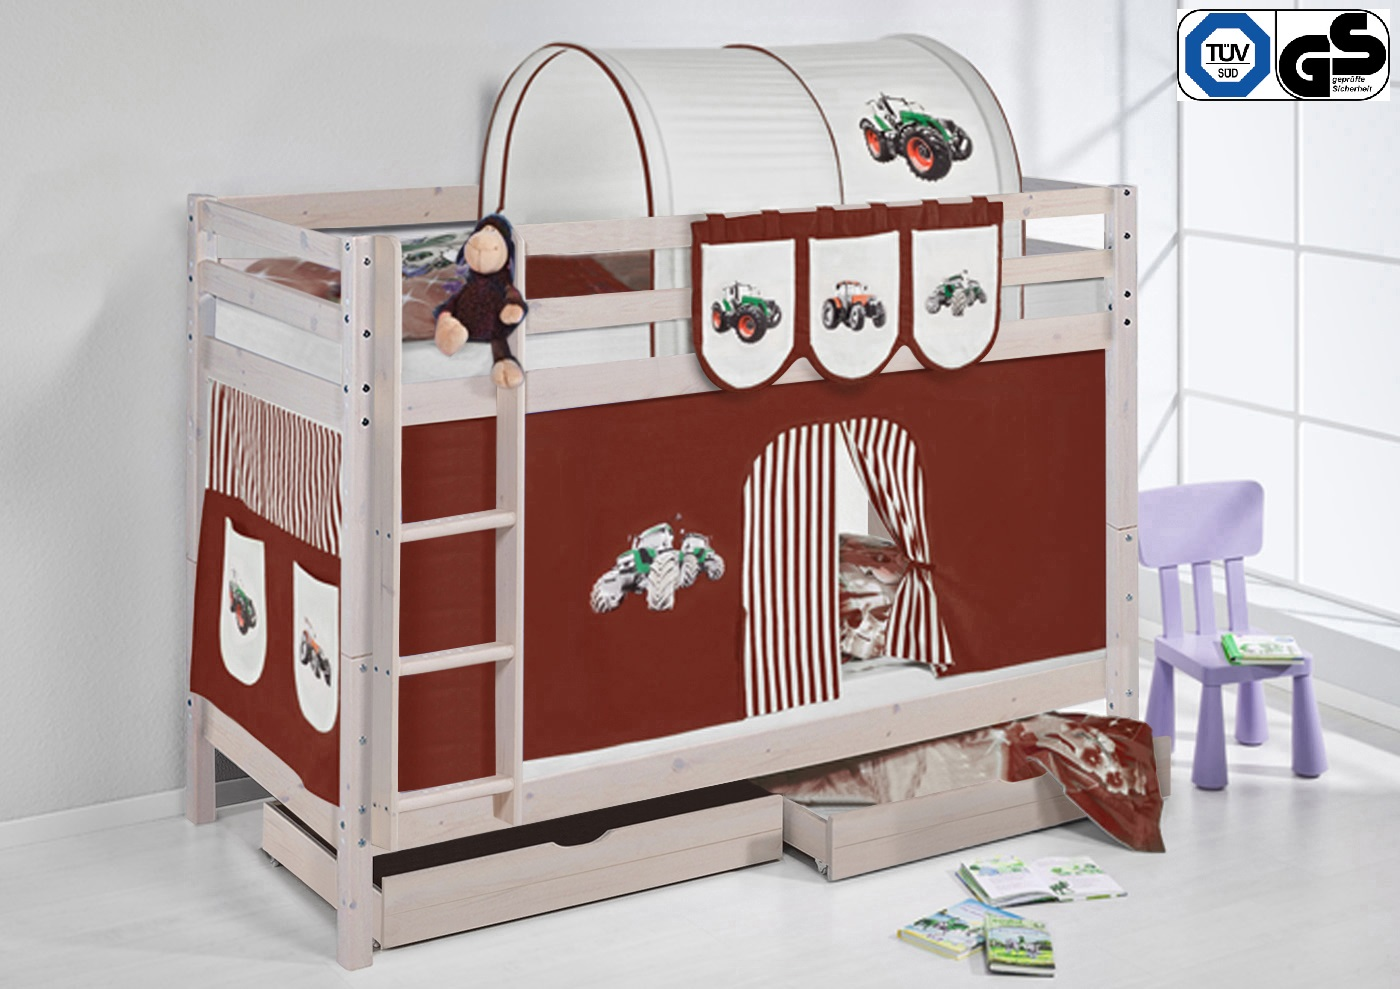 Uwis Etagenbett Gebraucht : Etagenbett baby great wood with